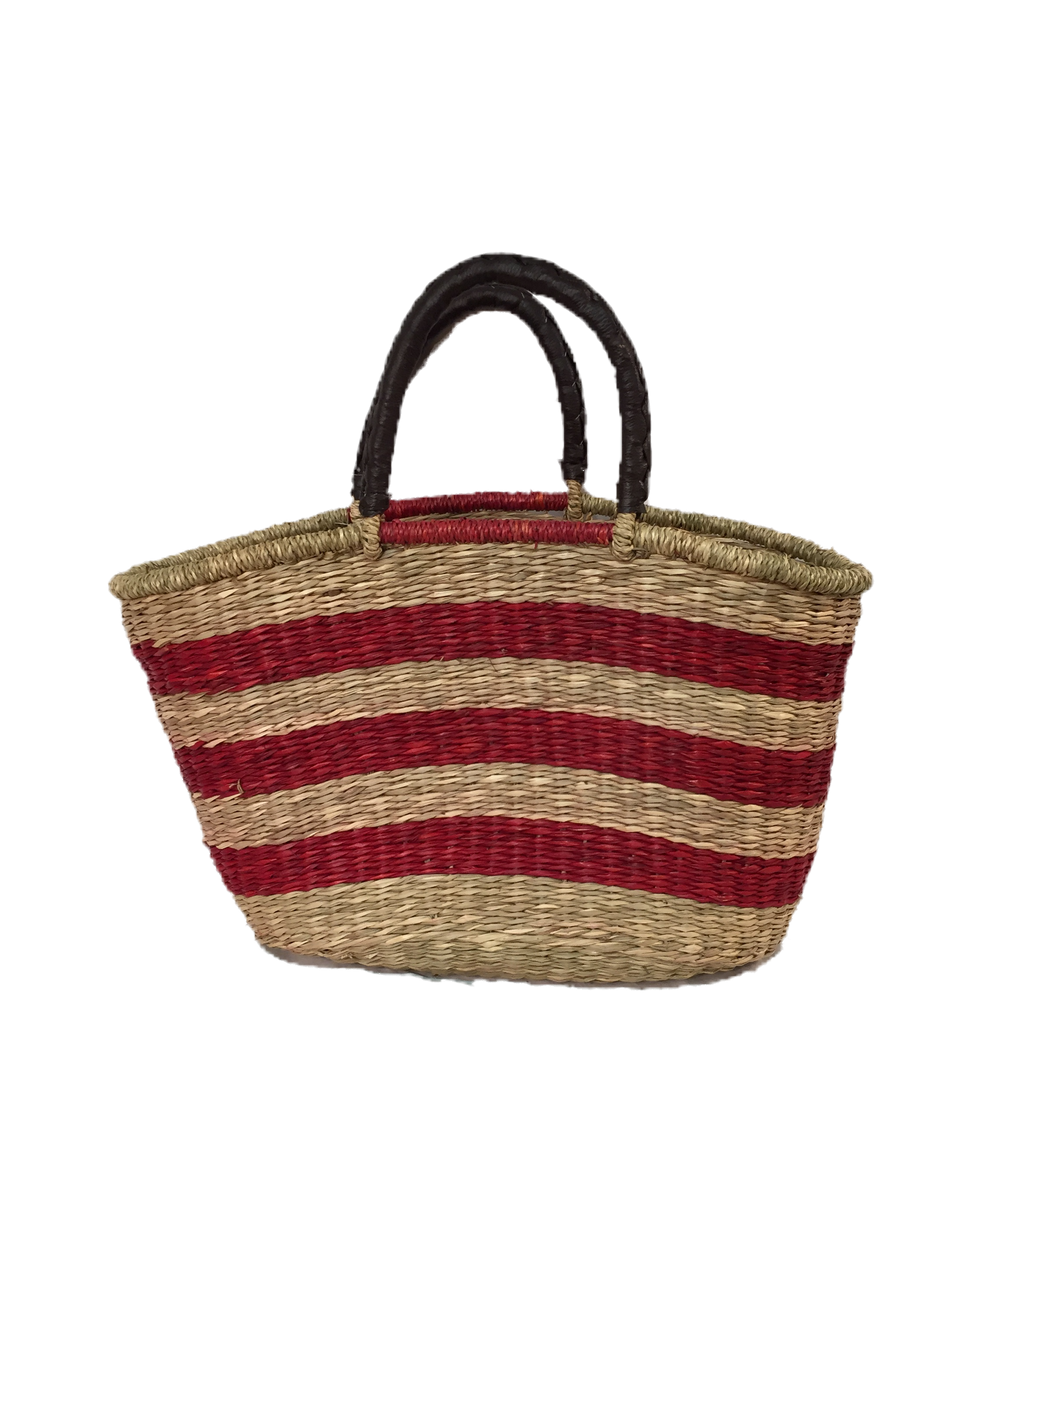 Seagrass Oval Bag - VAS11262RED (19x10x11